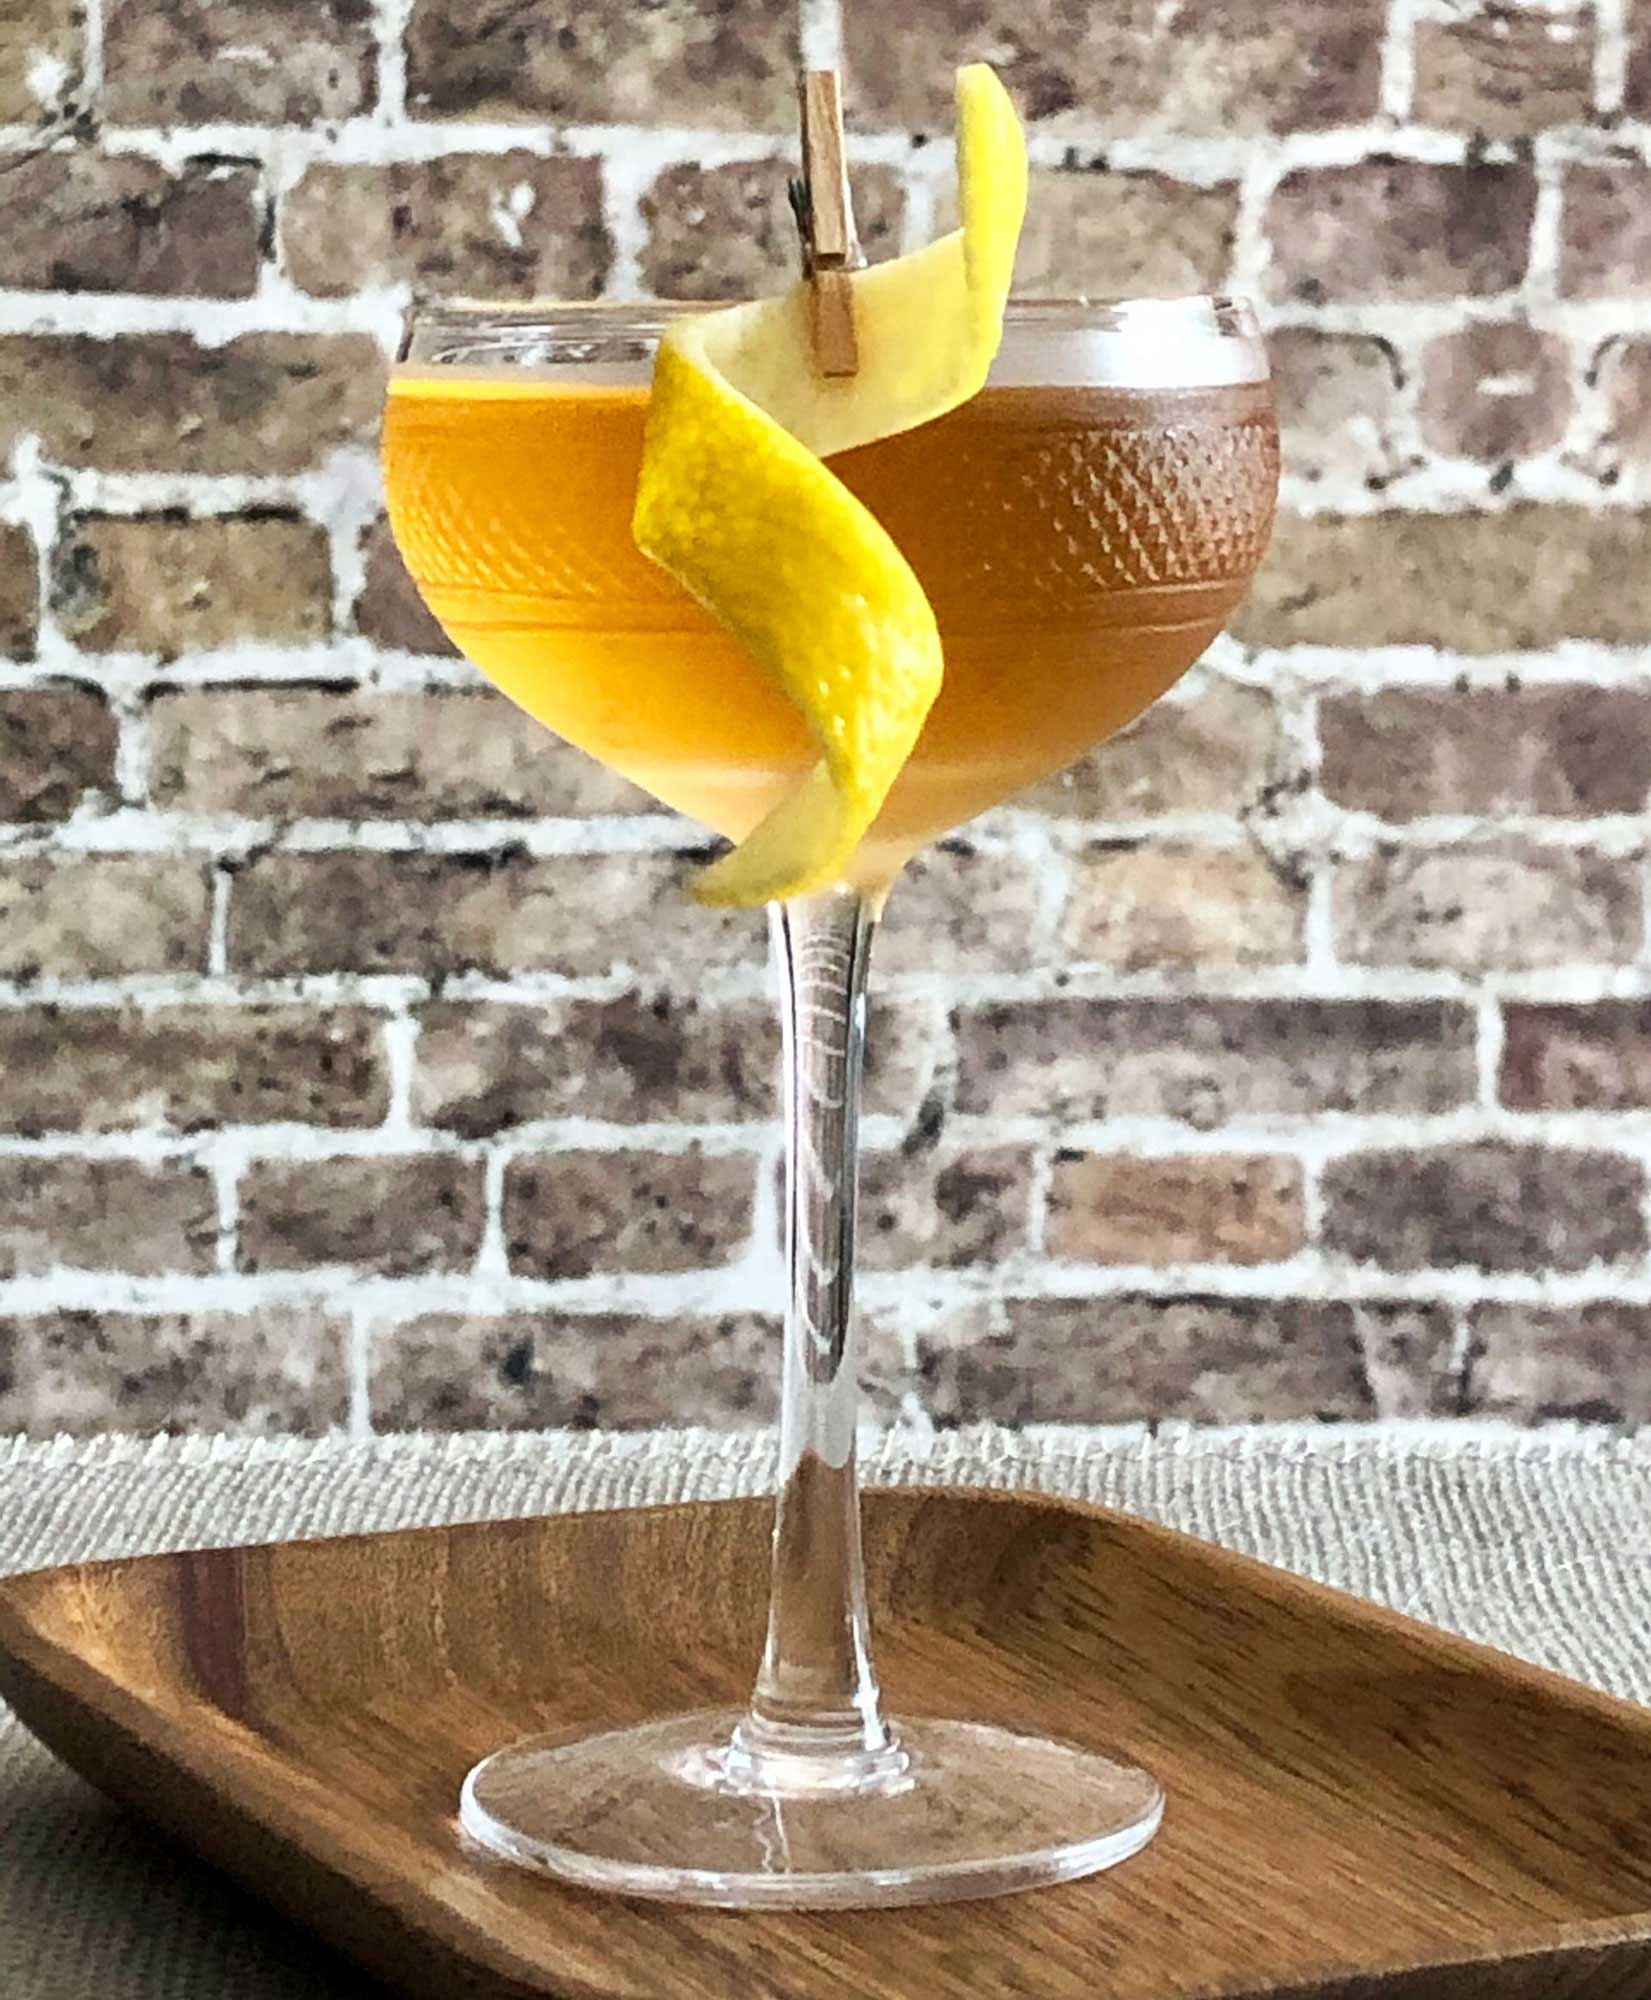 An example of the Empire, the mixed drink (cocktail), by Savoy Cocktail Book, featuring Hayman's London Dry Gin, calvados, and Rothman & Winter Orchard Apricot Liqueur; photo by Lee Edwards